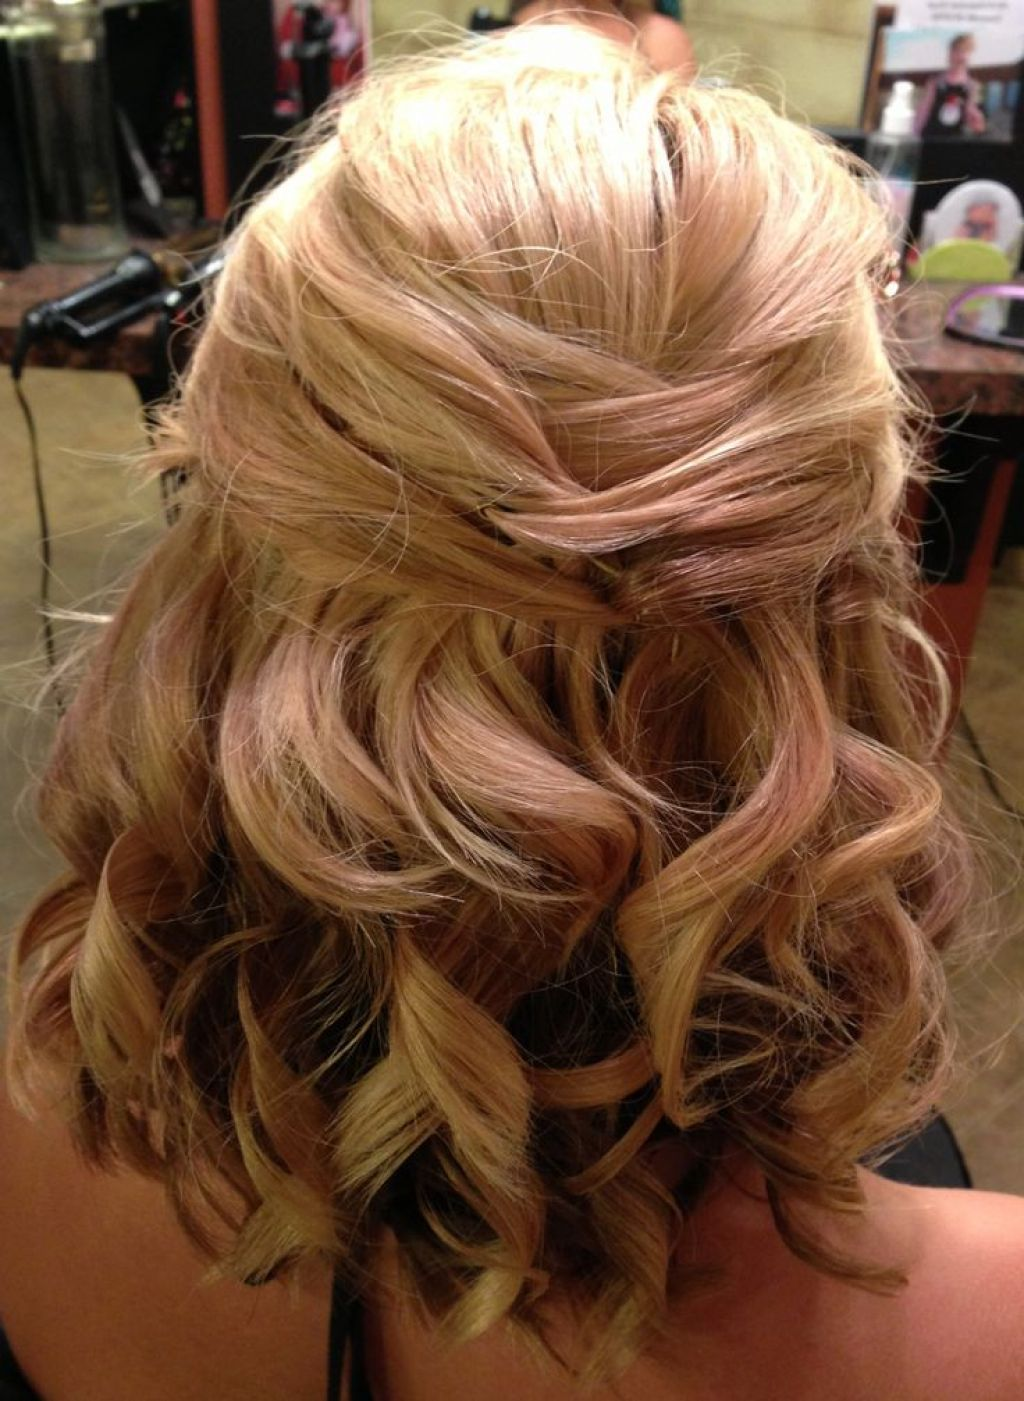 65 half up half down wedding hairstyles ideas | shoulder length